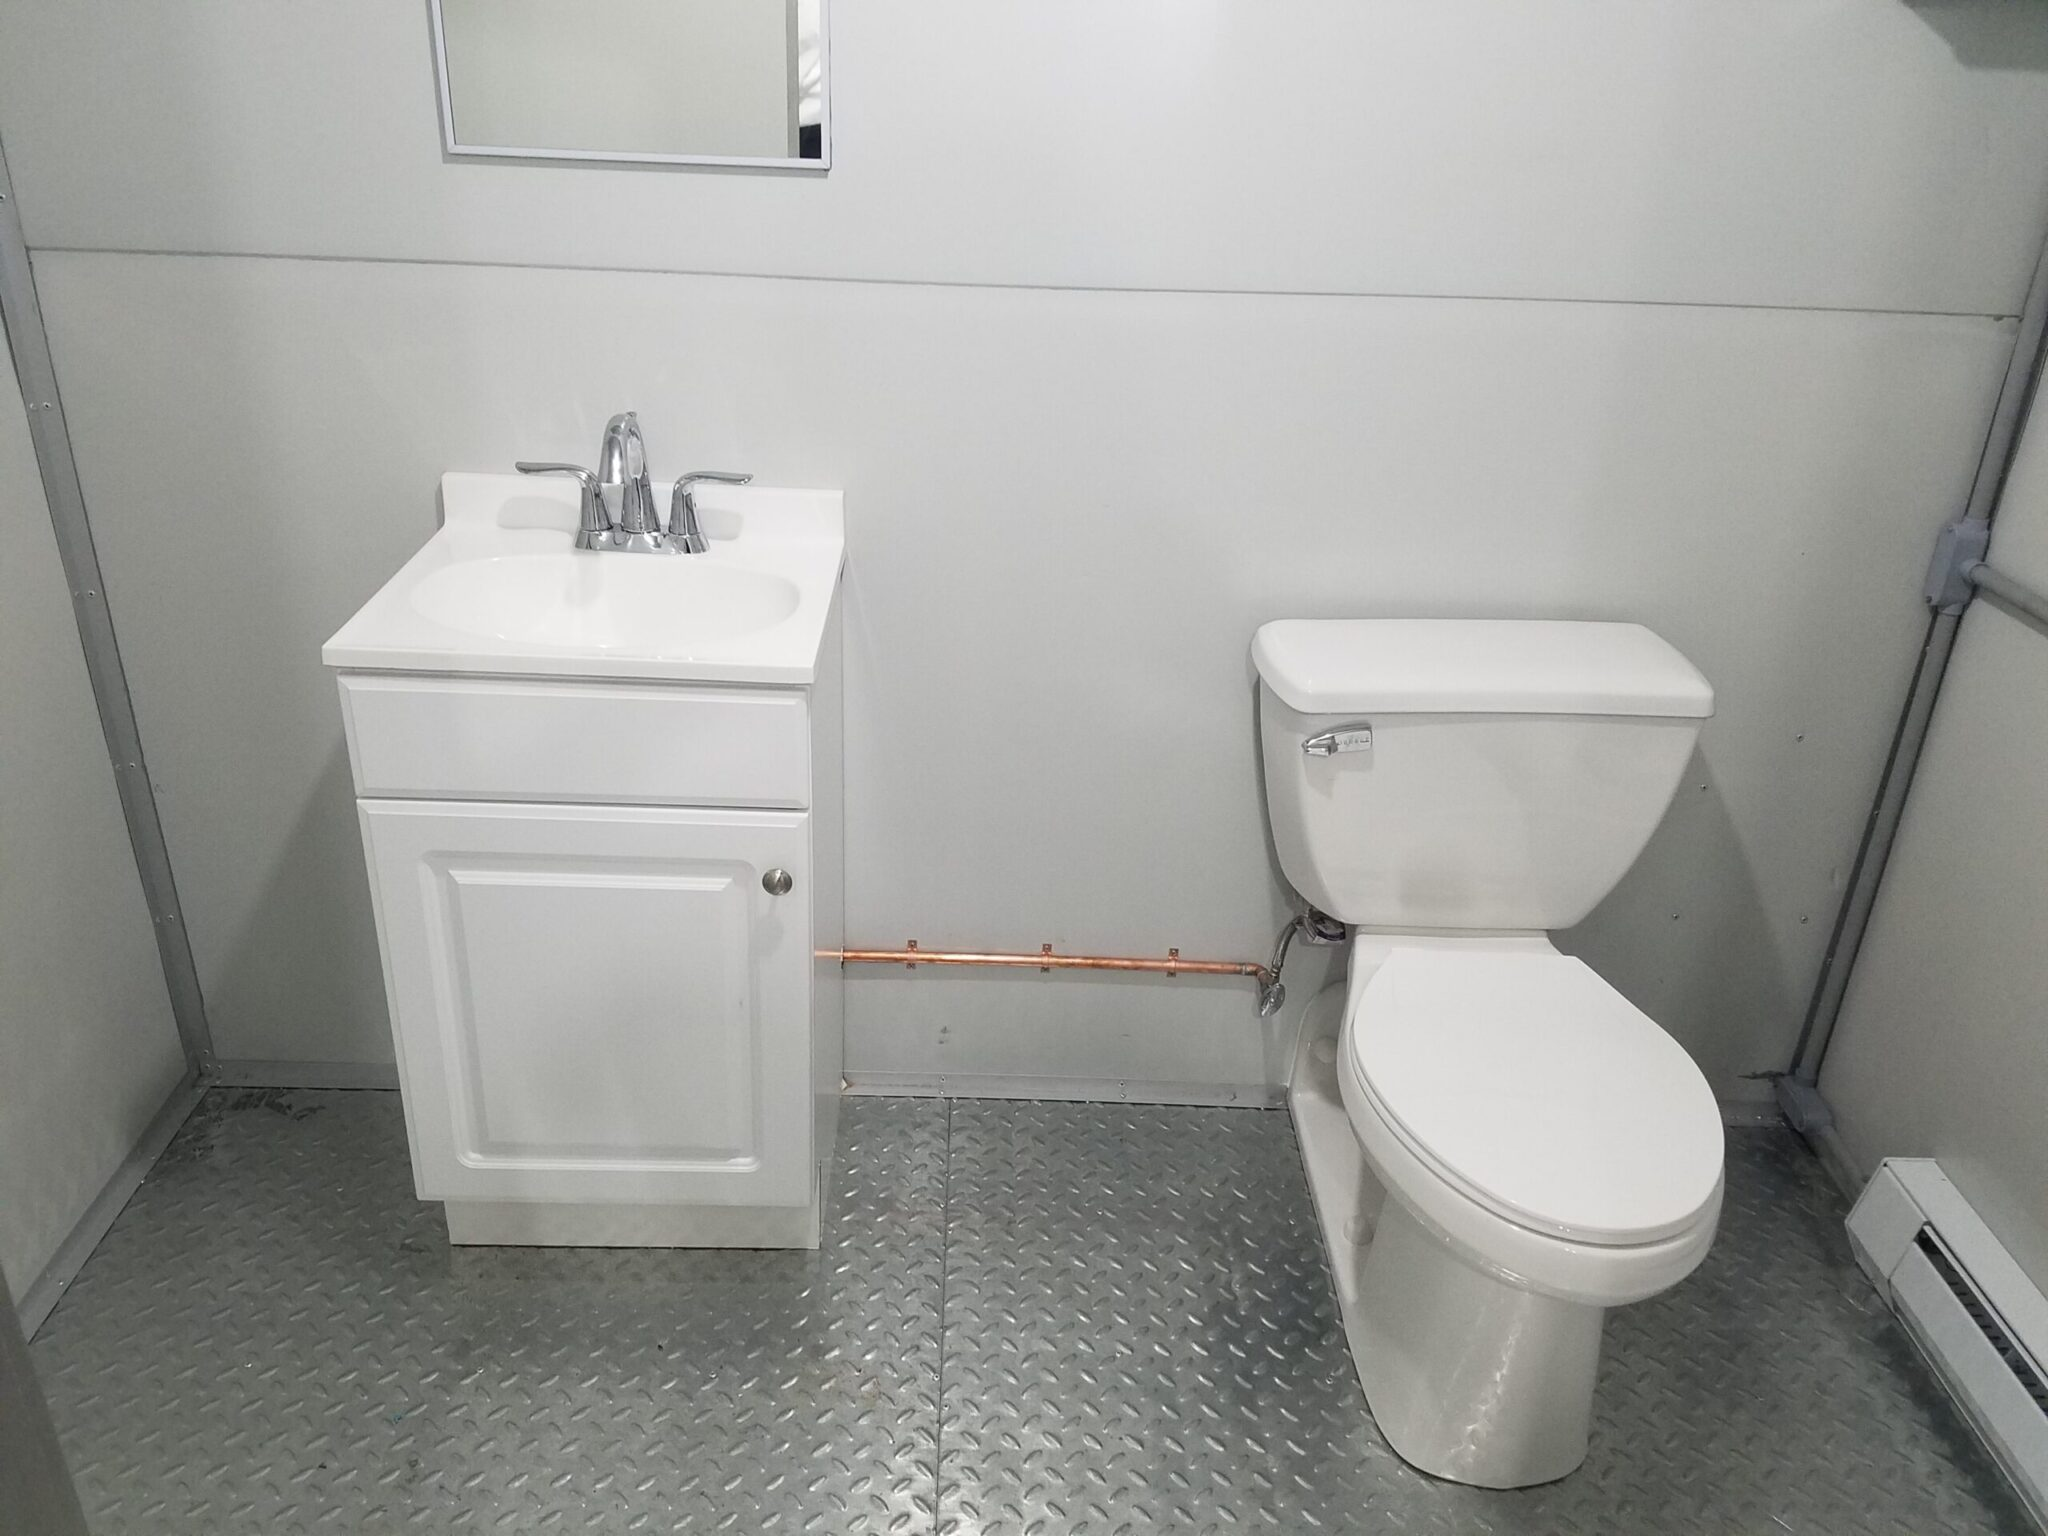 Sink and Toilet, 8x12 General Security Guard Booth in Boston, MA